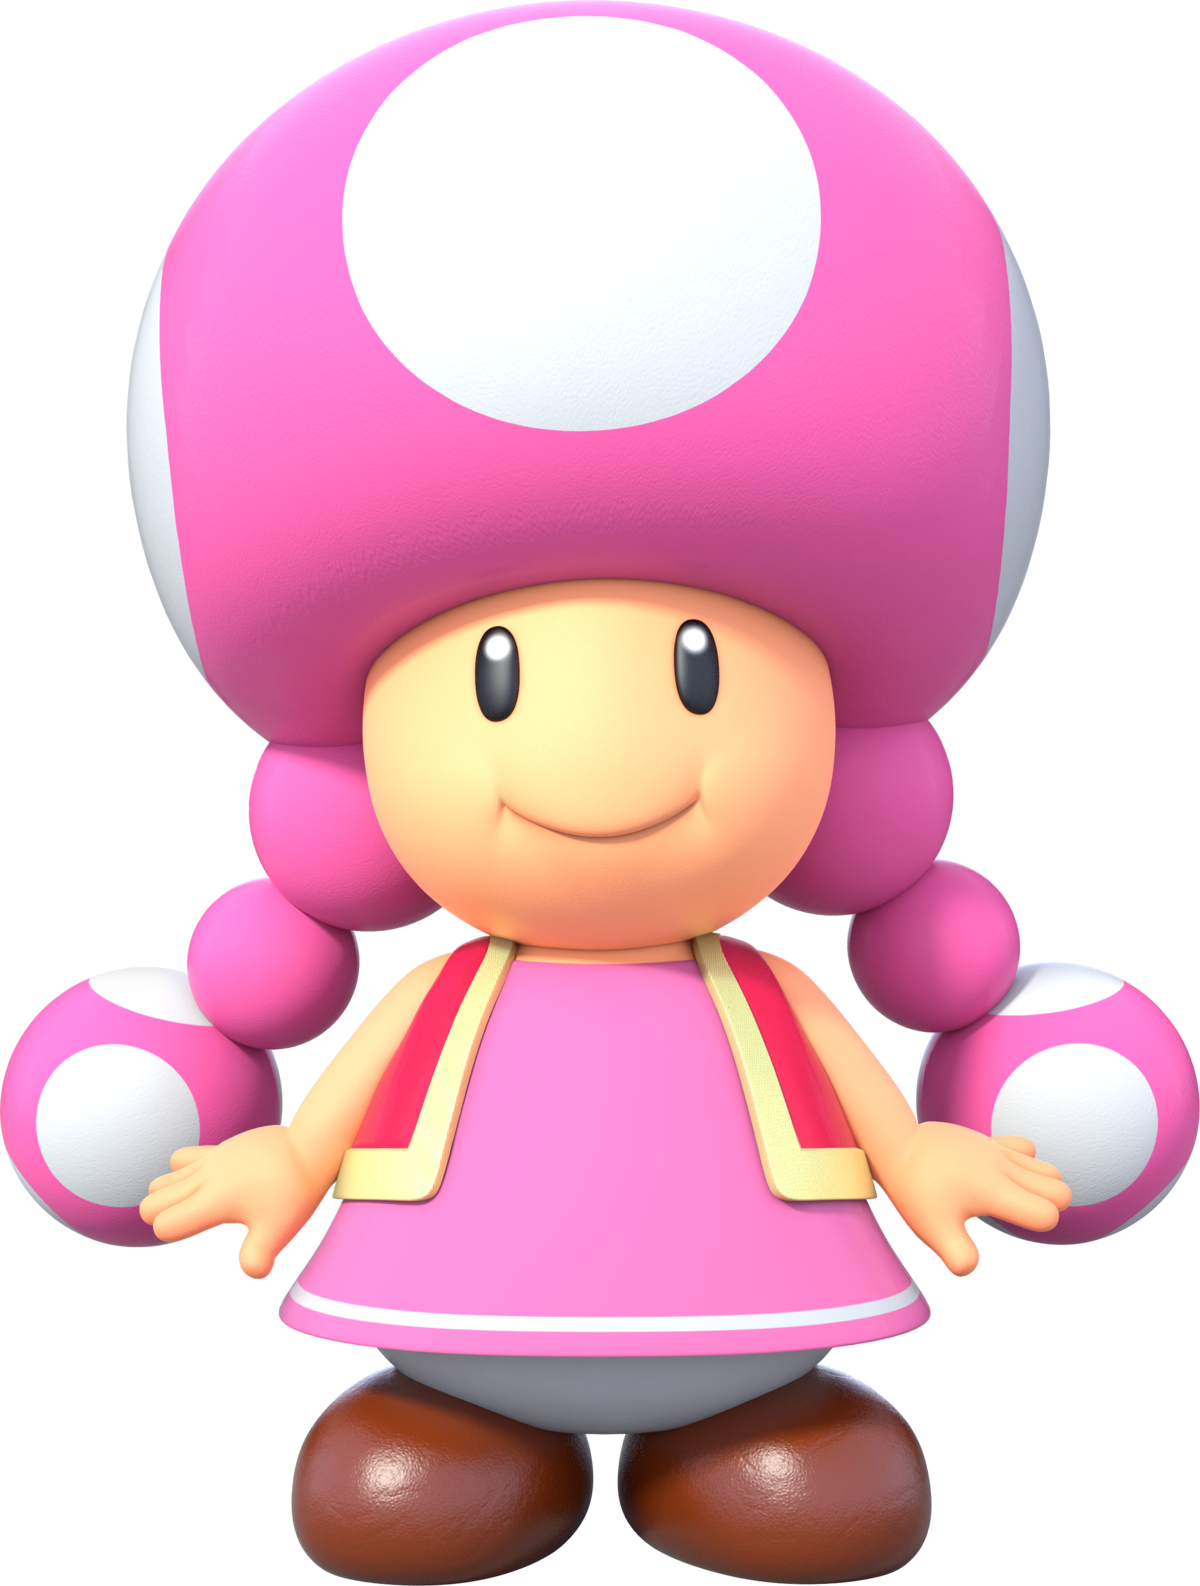 Toadette Super Mario Wiki The Mario Encyclopedia